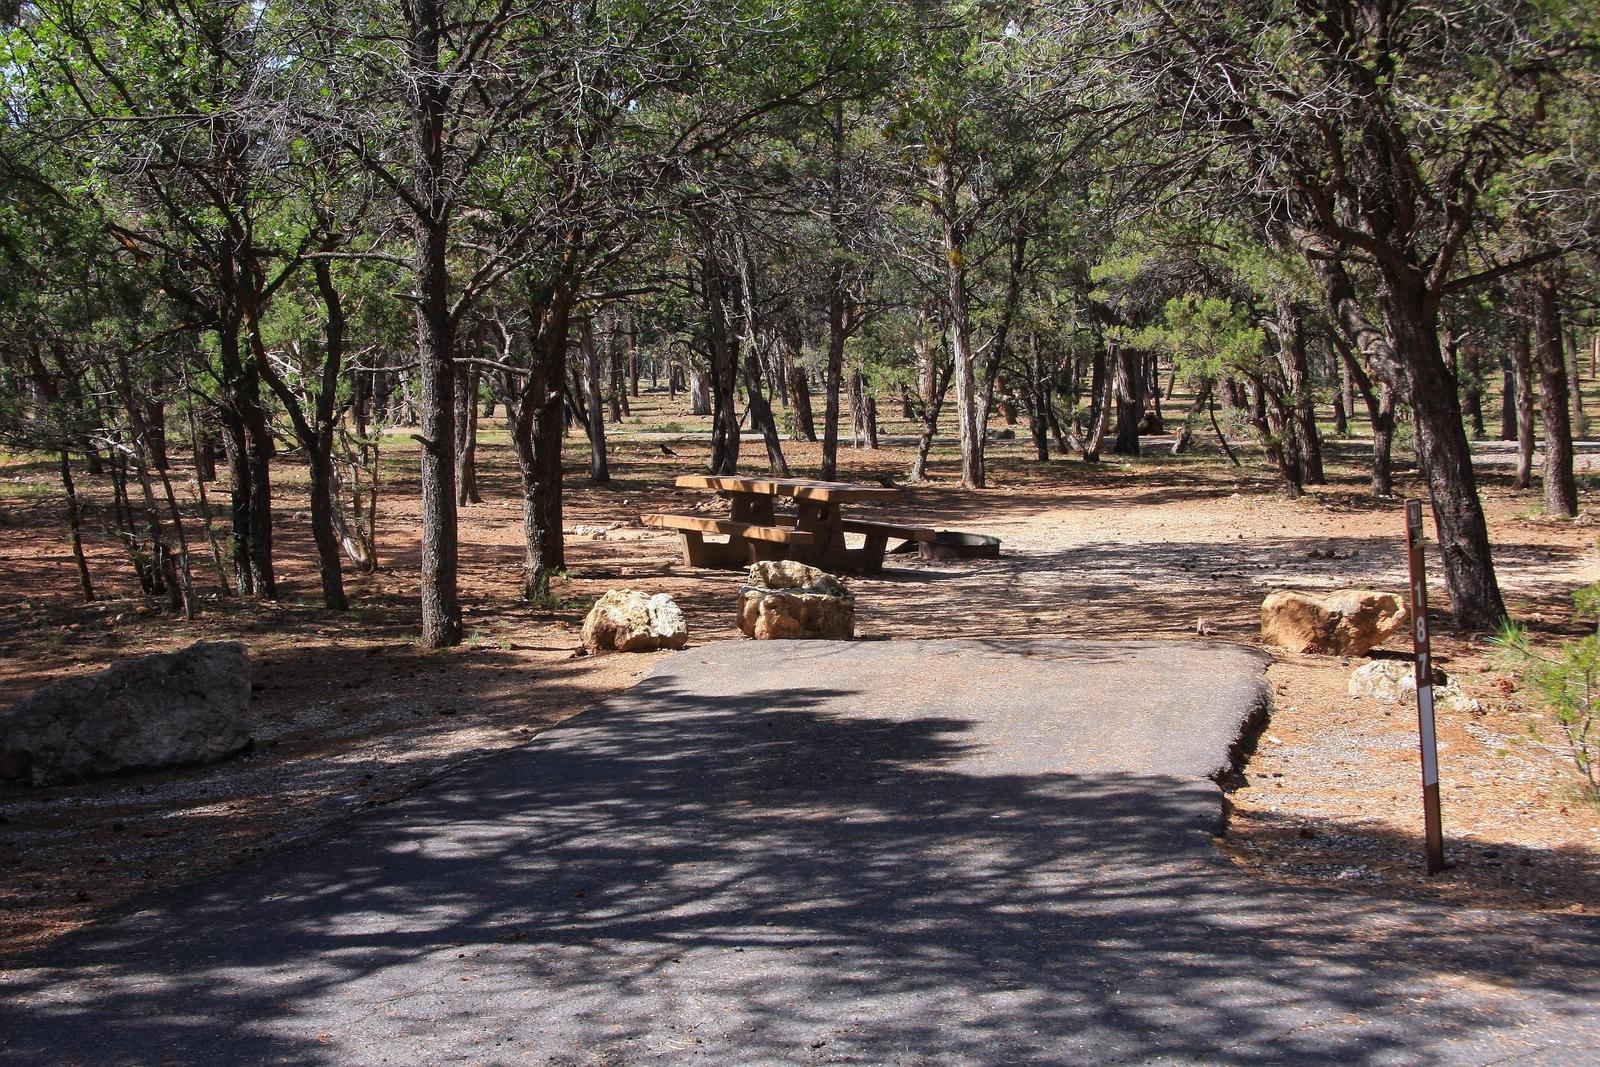 Picnic table, fire pit, and parking spot, Mather CampgroundPicnic table, fire pit, and parking spot for Maple Loop 187, Mather Campground